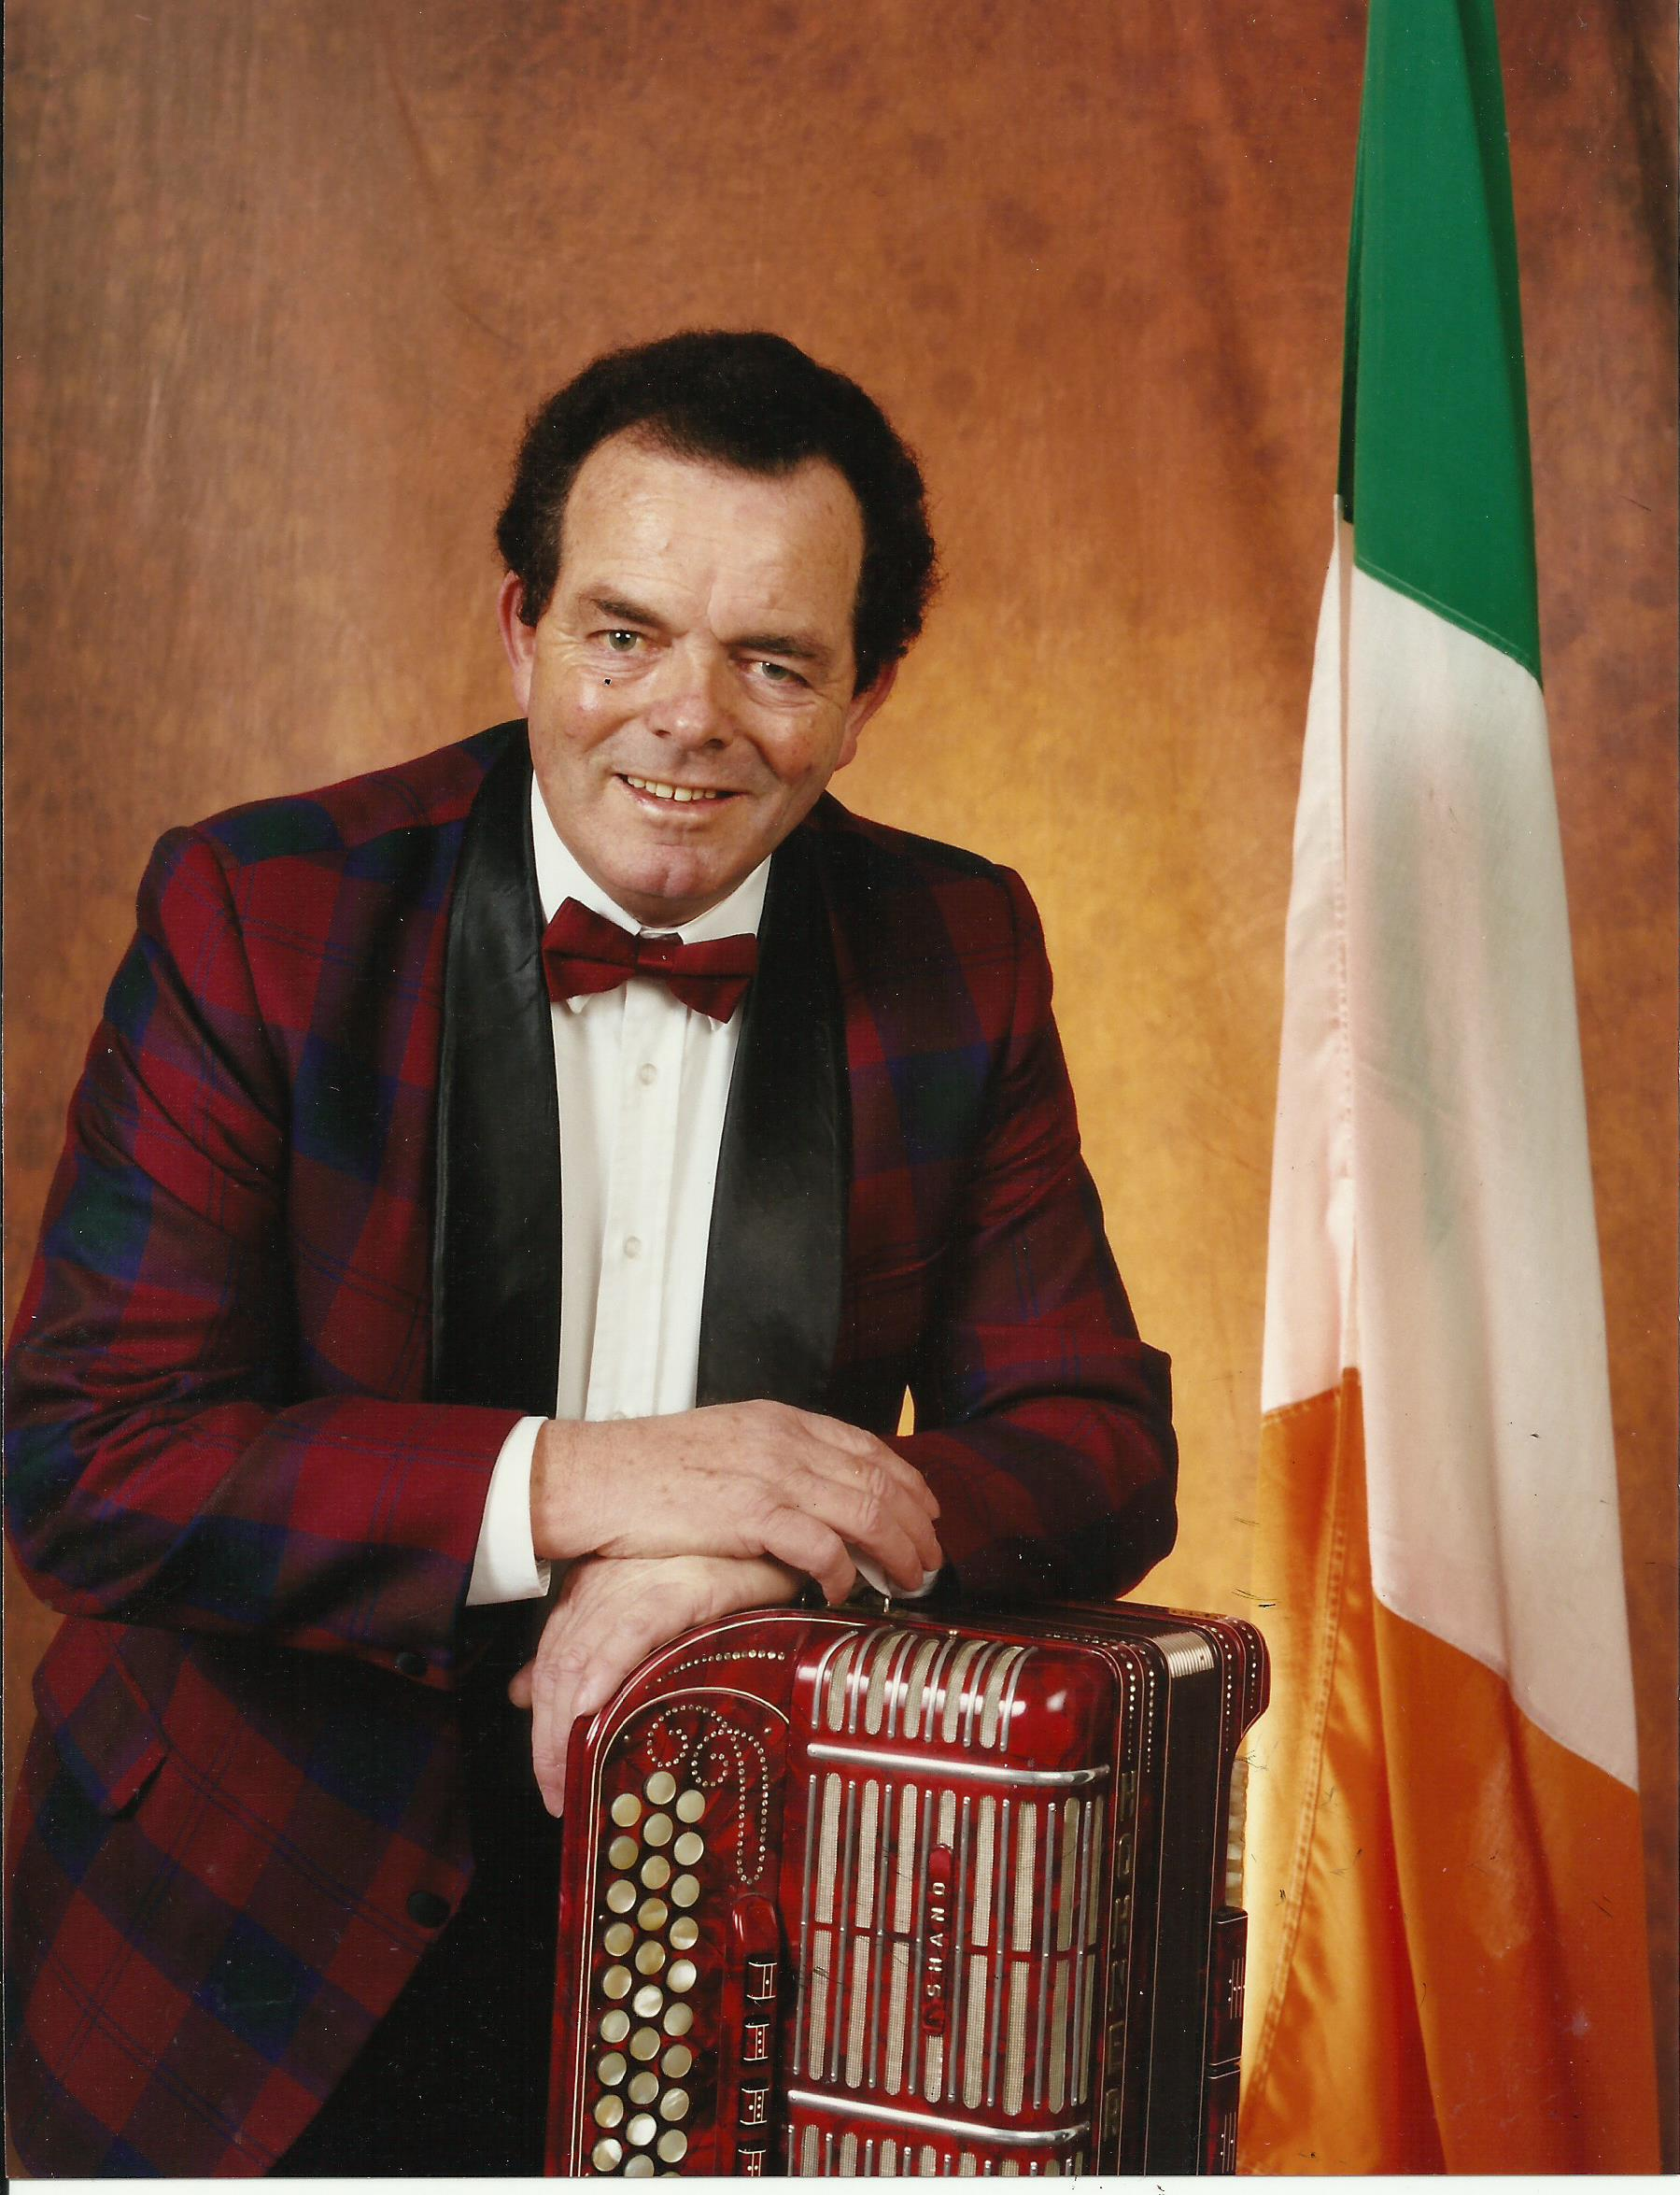 Donal Ring - with accordion & Irish Flag